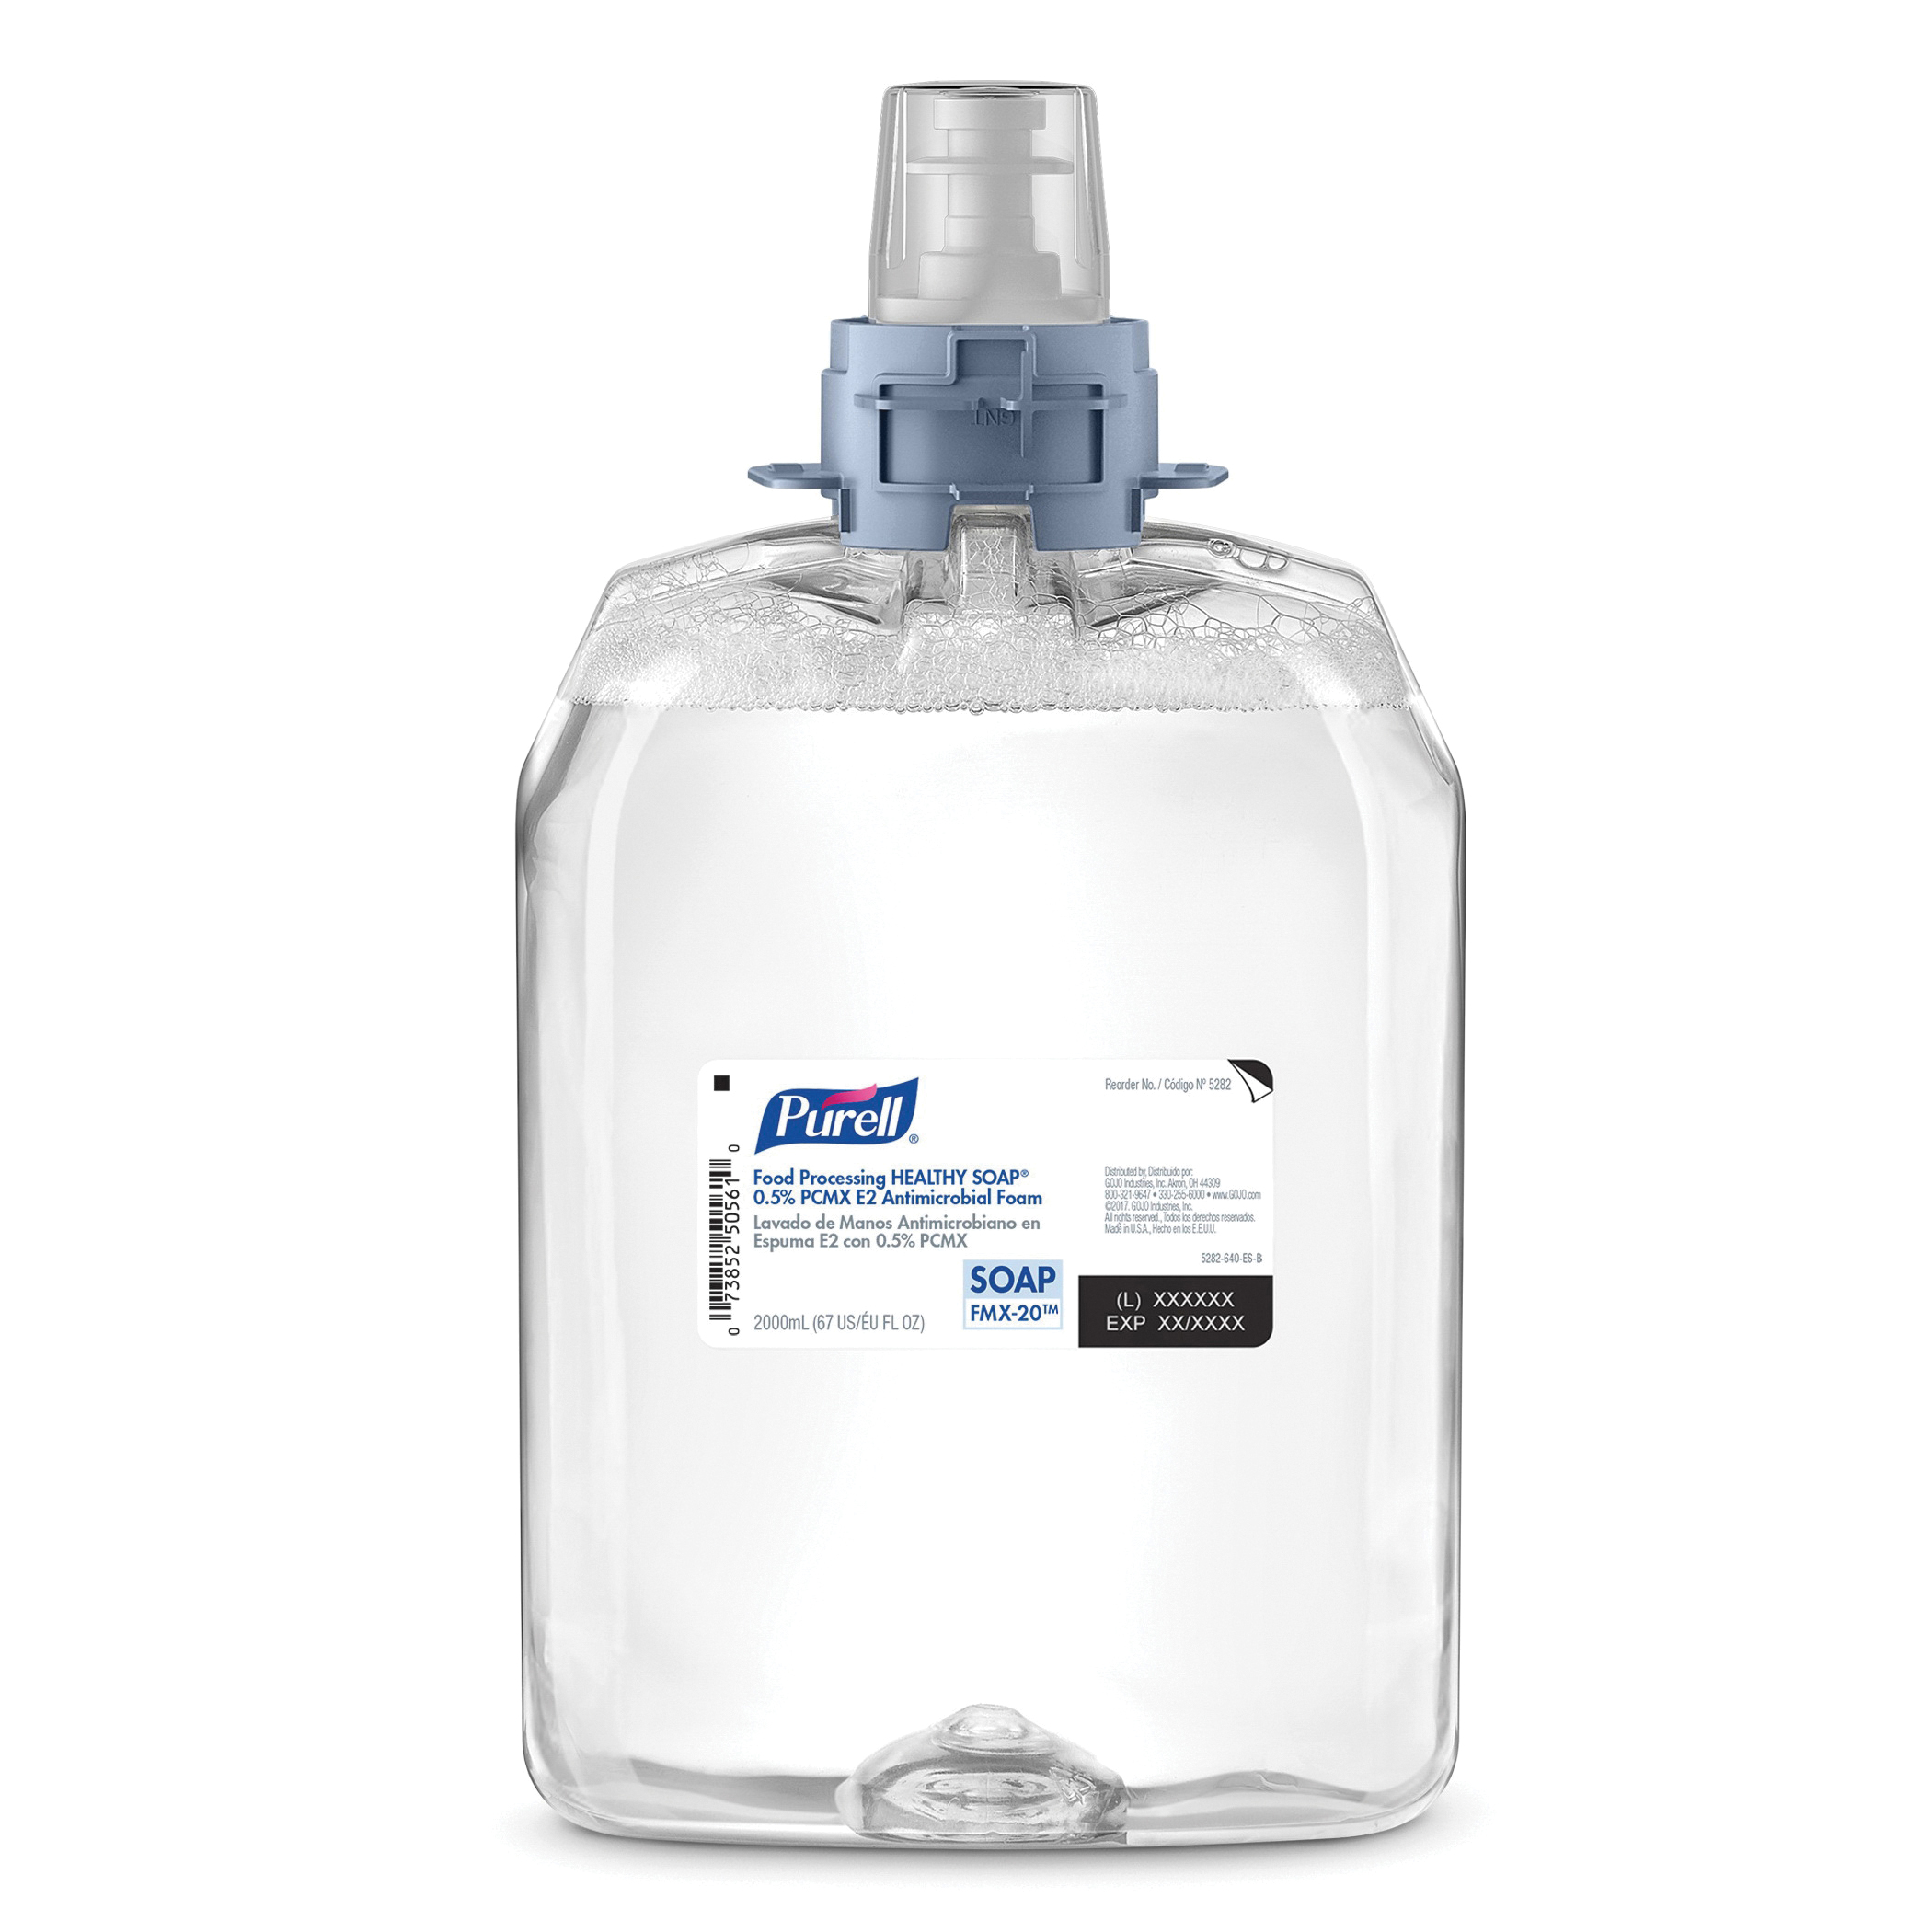 PURELL® 5279-02 Professional HEALTHY SOAP® Antimicrobial Soap, 2000 mL Nominal, Dispenser Refill Package, Foam Form, Plum Odor/Scent, Clear/Yellow